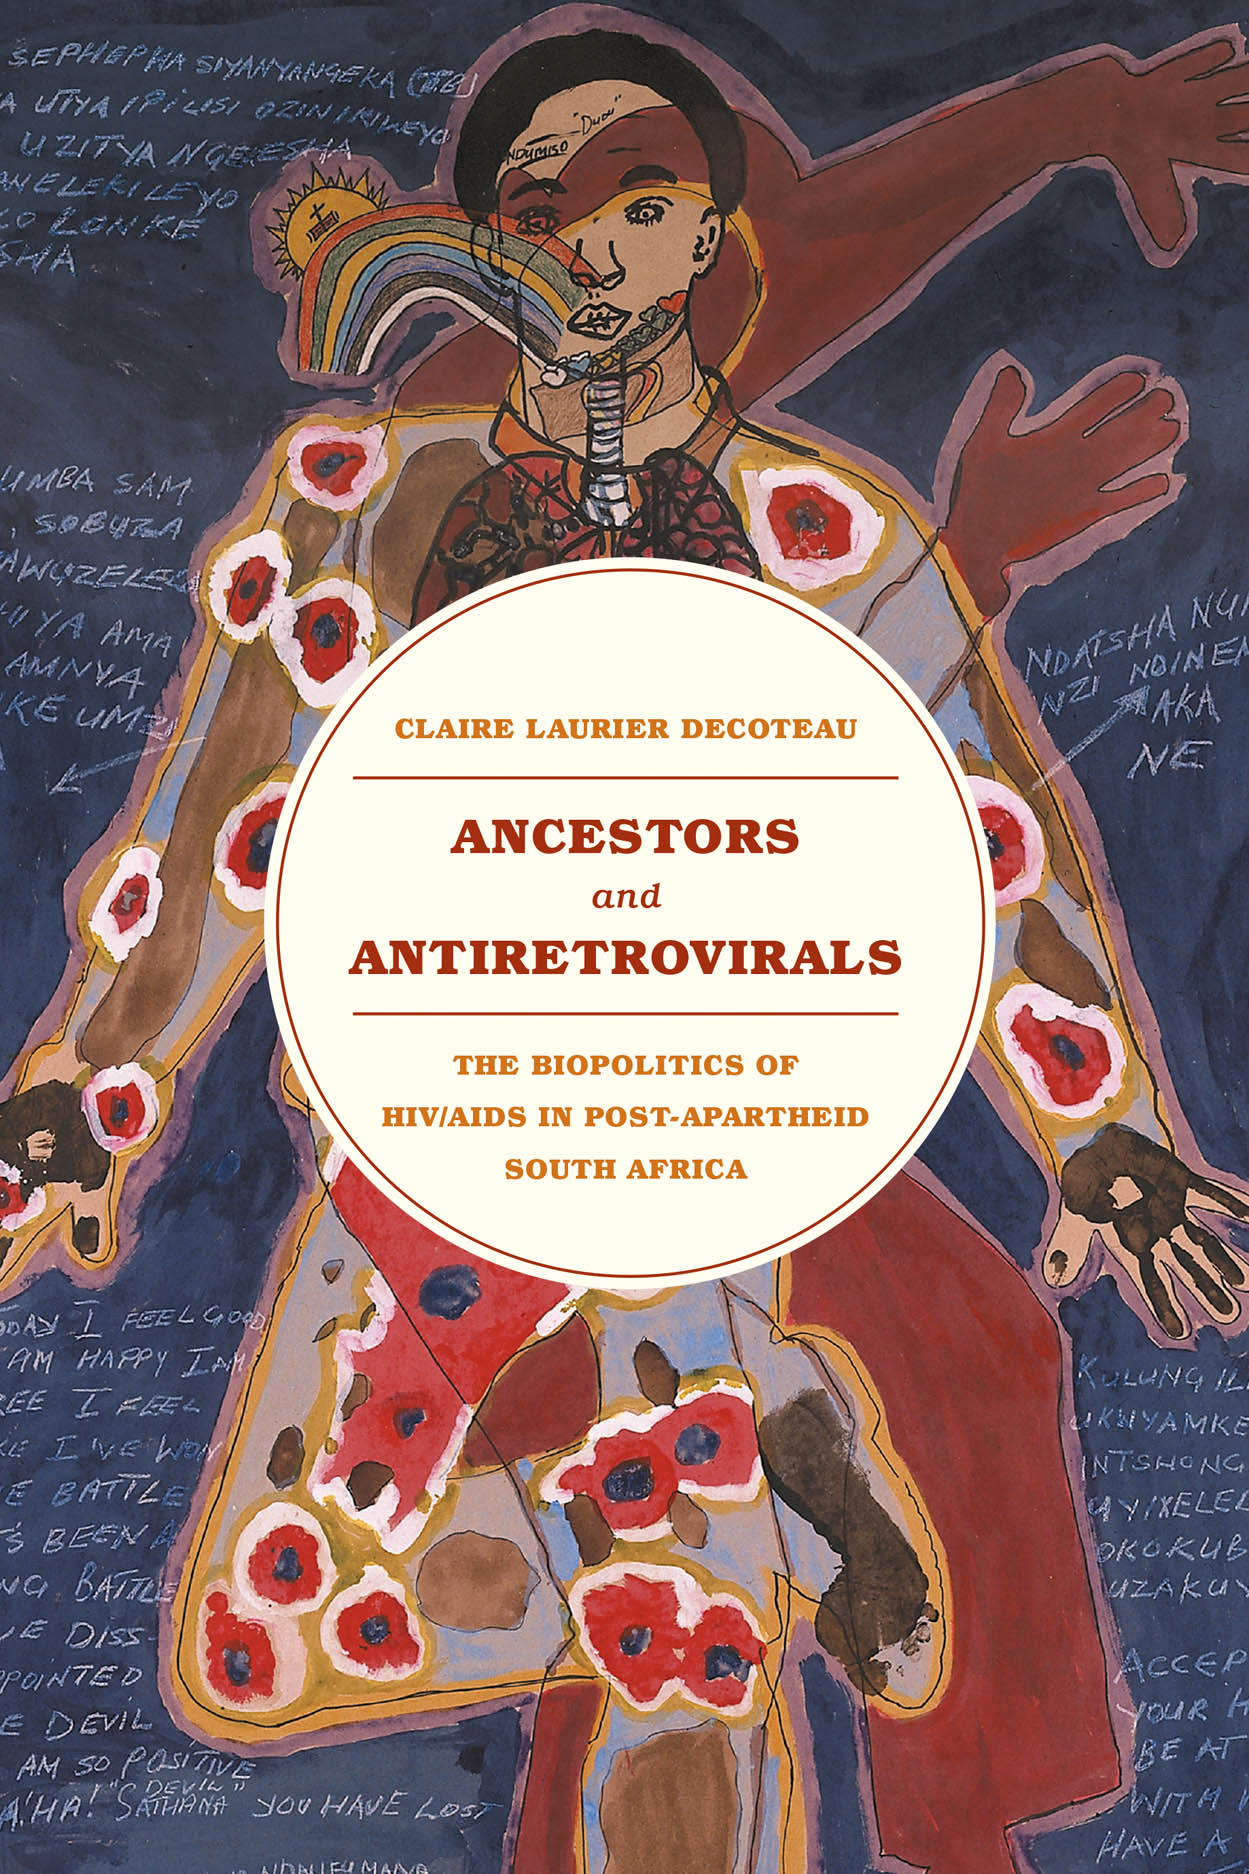 Ancestors and Antiretrovirals: The Biopolitics of HIV/AIDS in Post-Apartheid South Africa